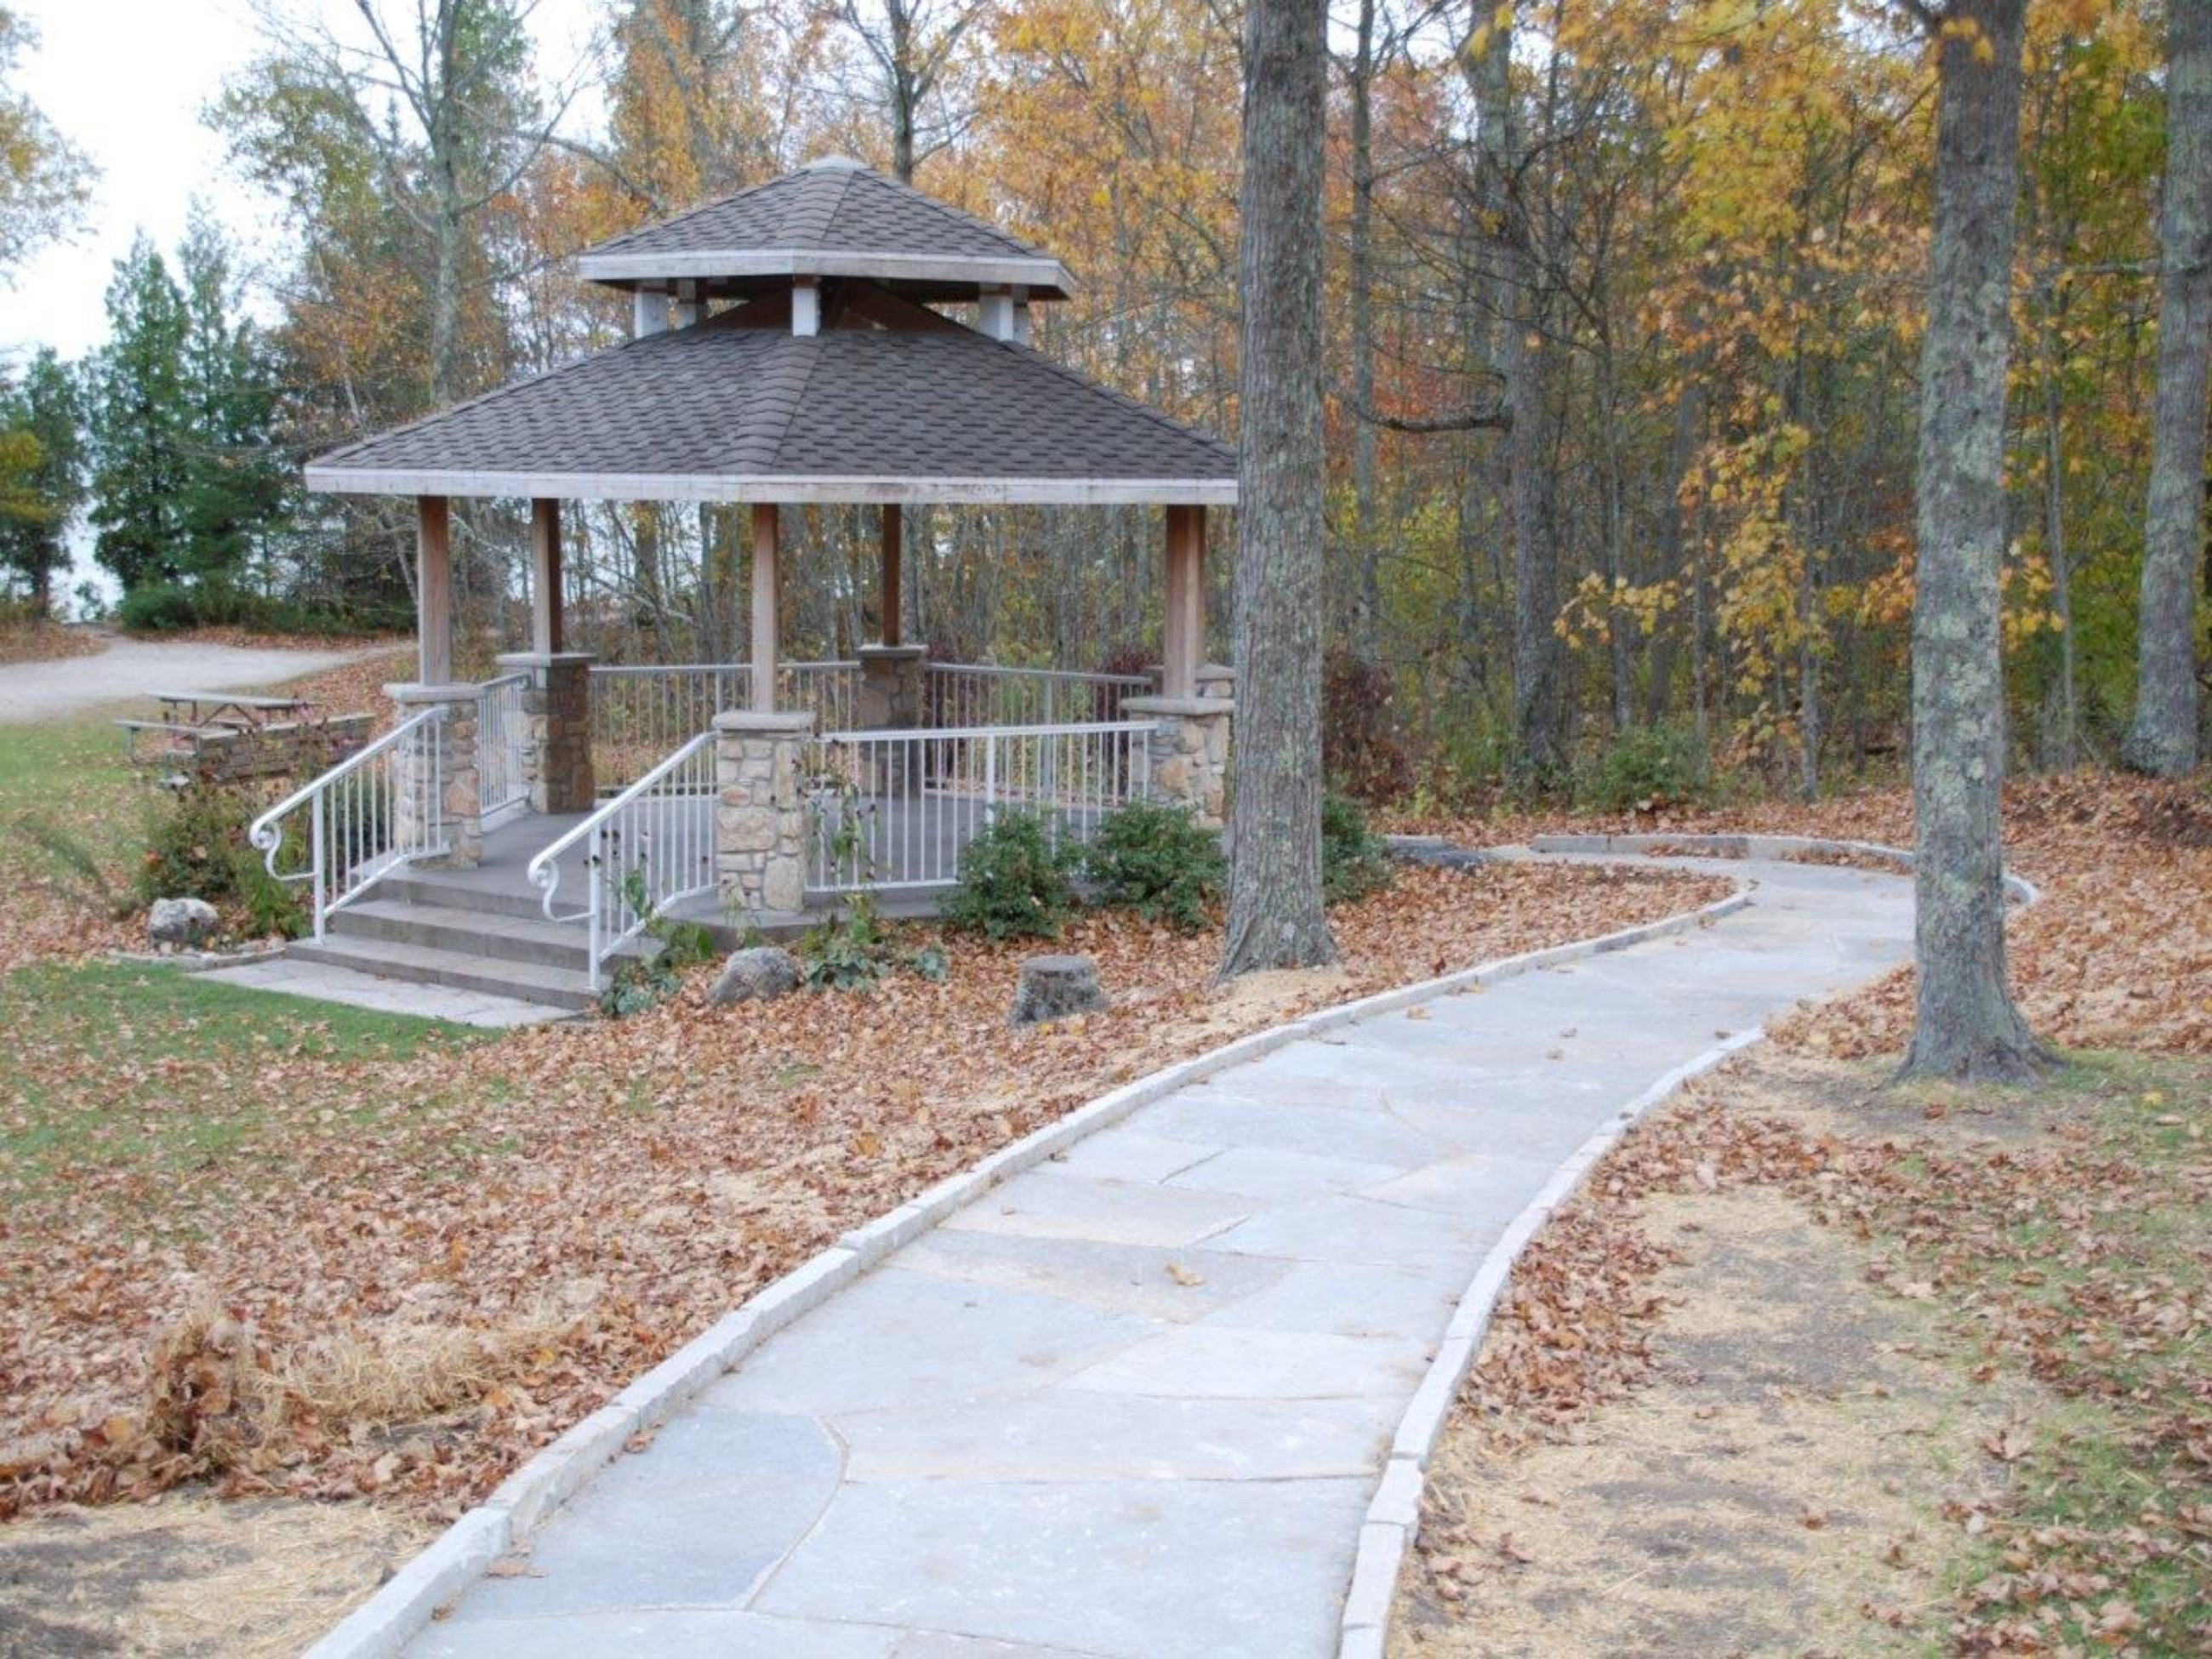 Cave Point County Park Gazebo with accessible pathway